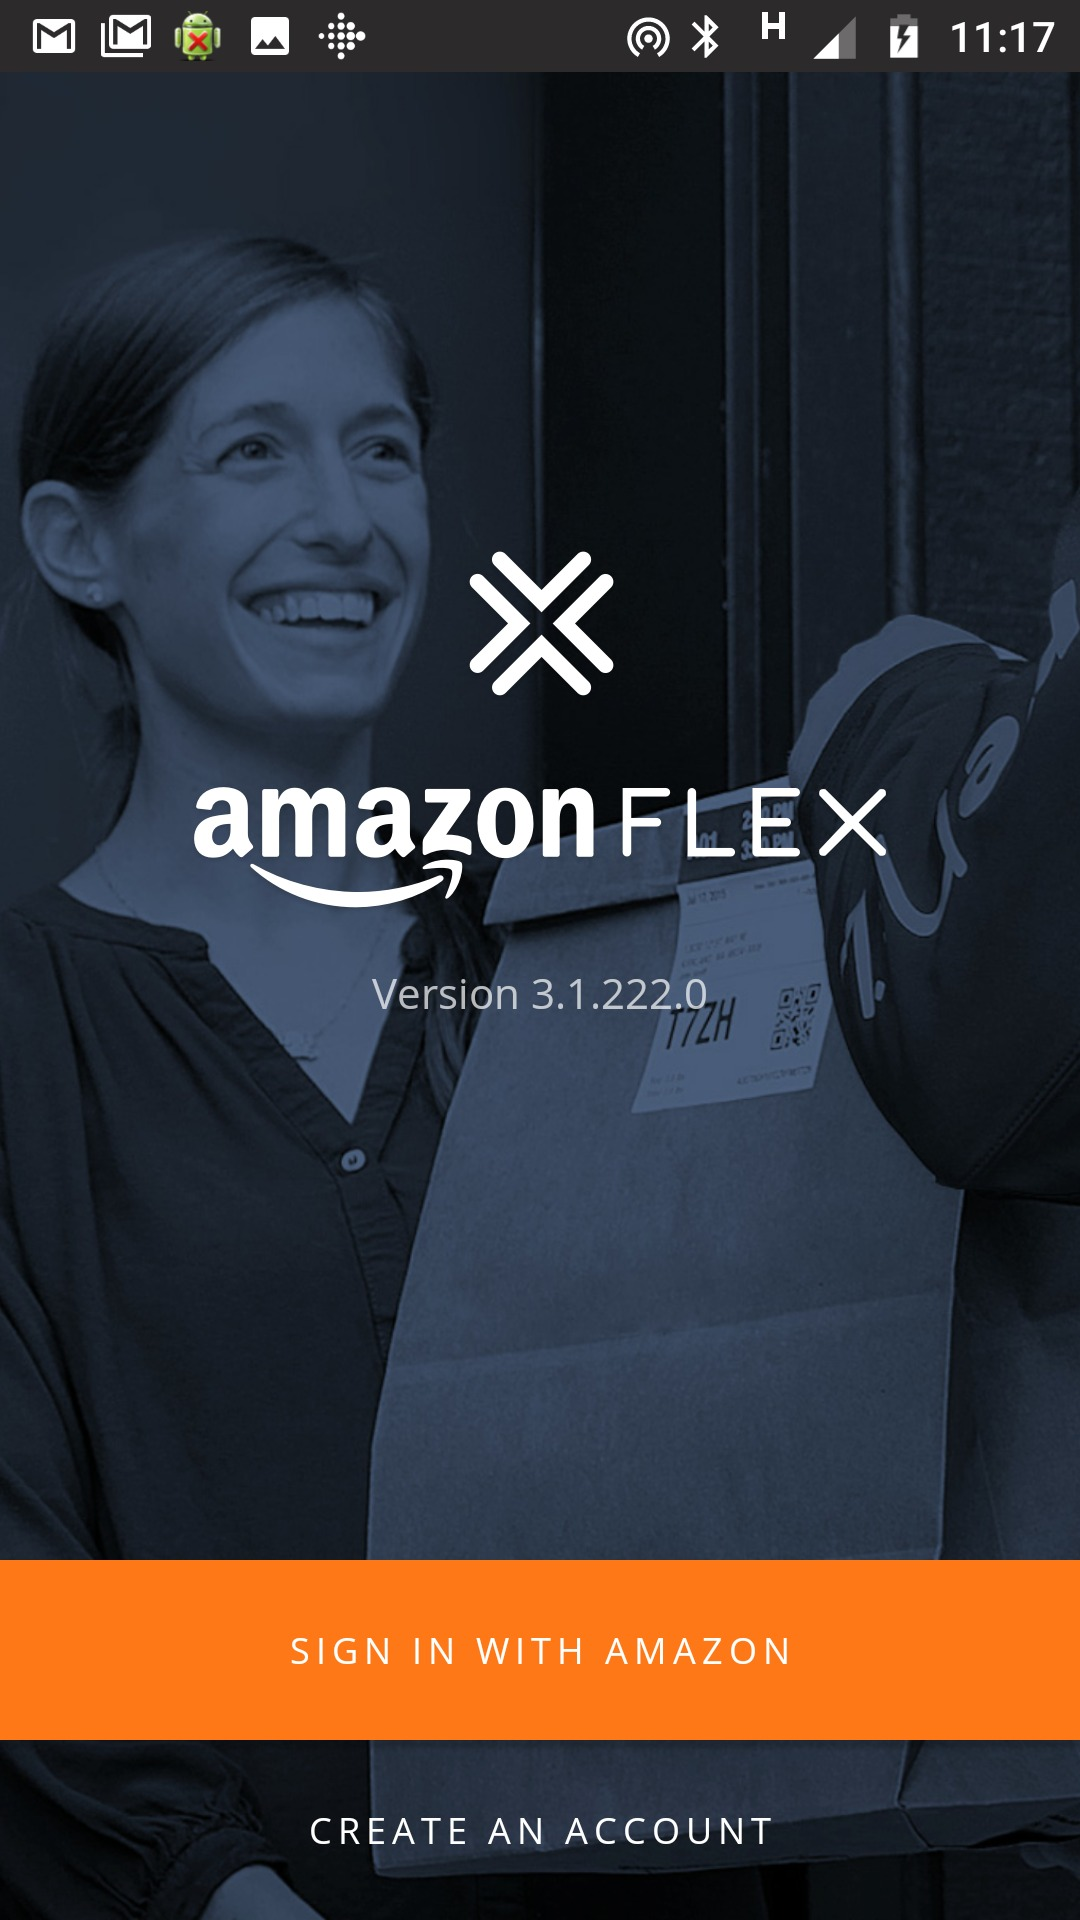 Top 10 Tips for Amazon Flex drivers